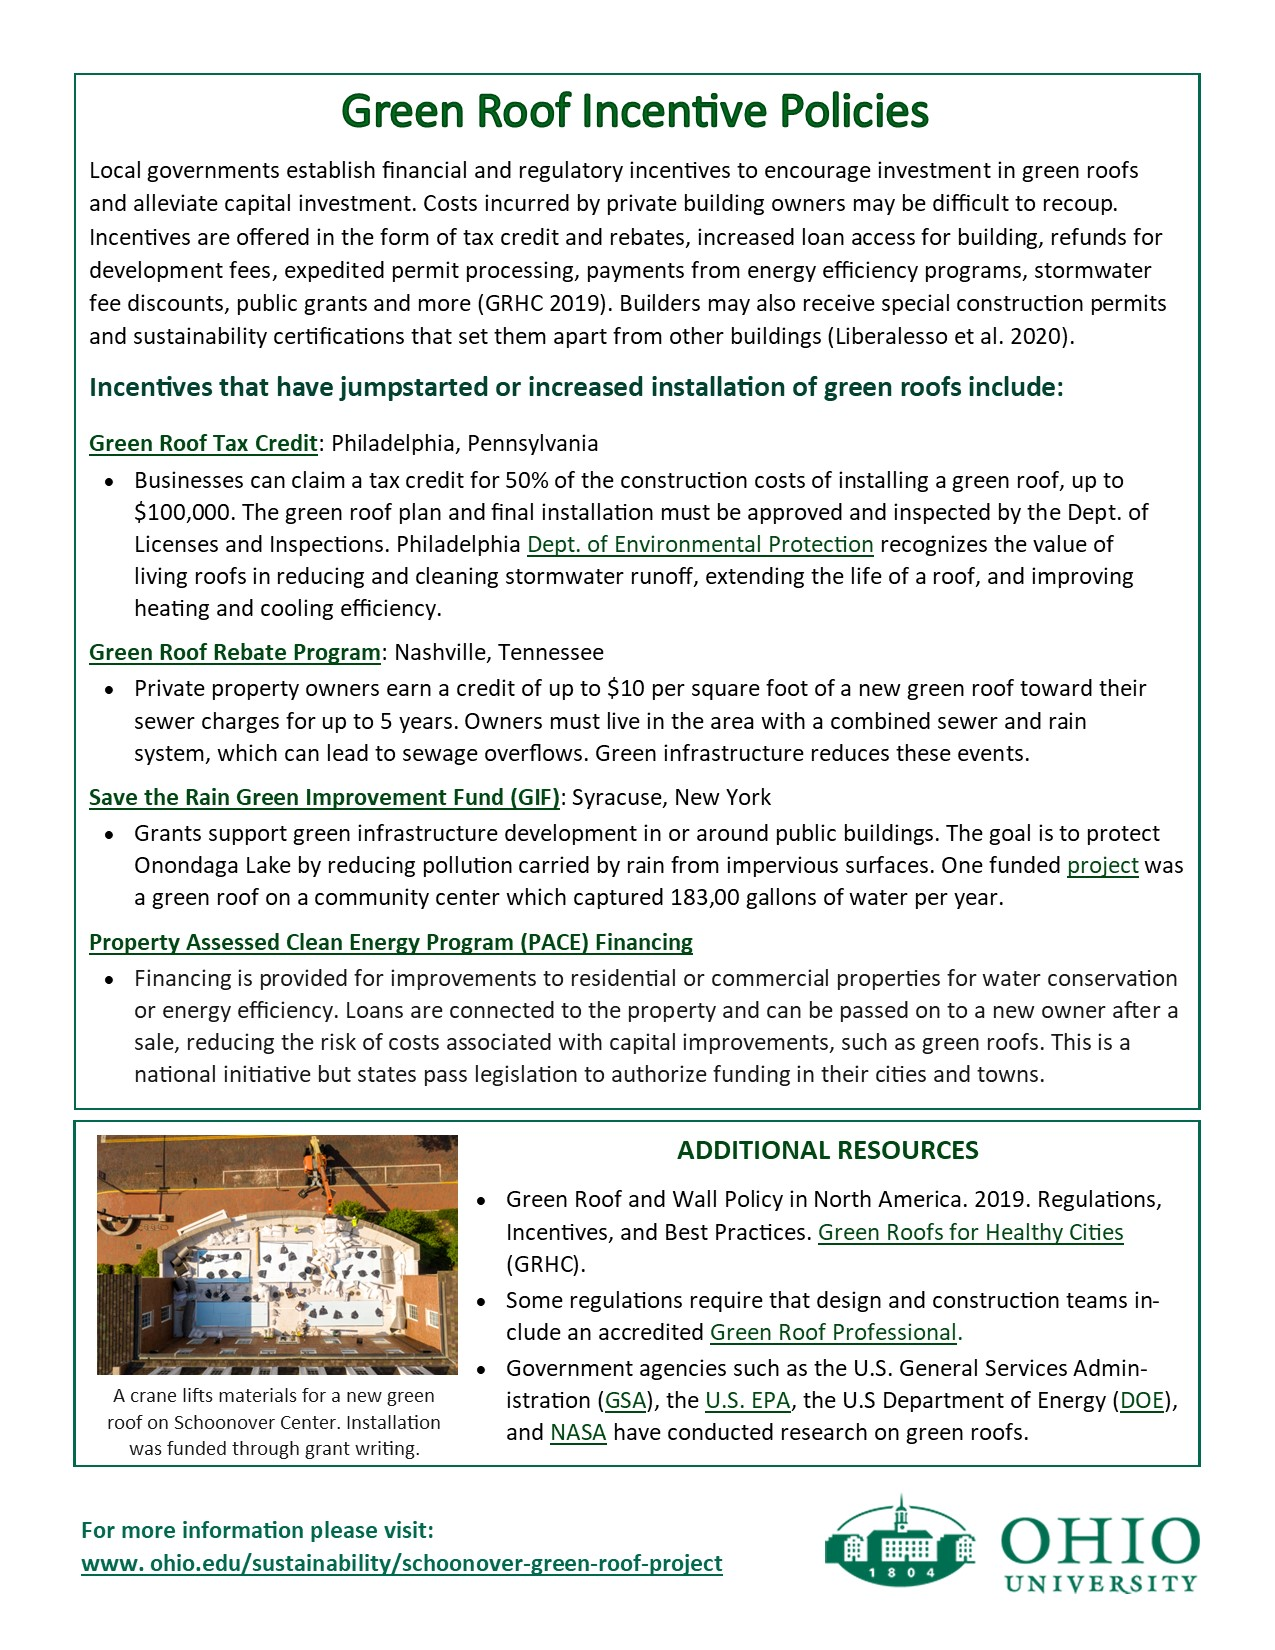 Flyer describing green roof policies p. 2